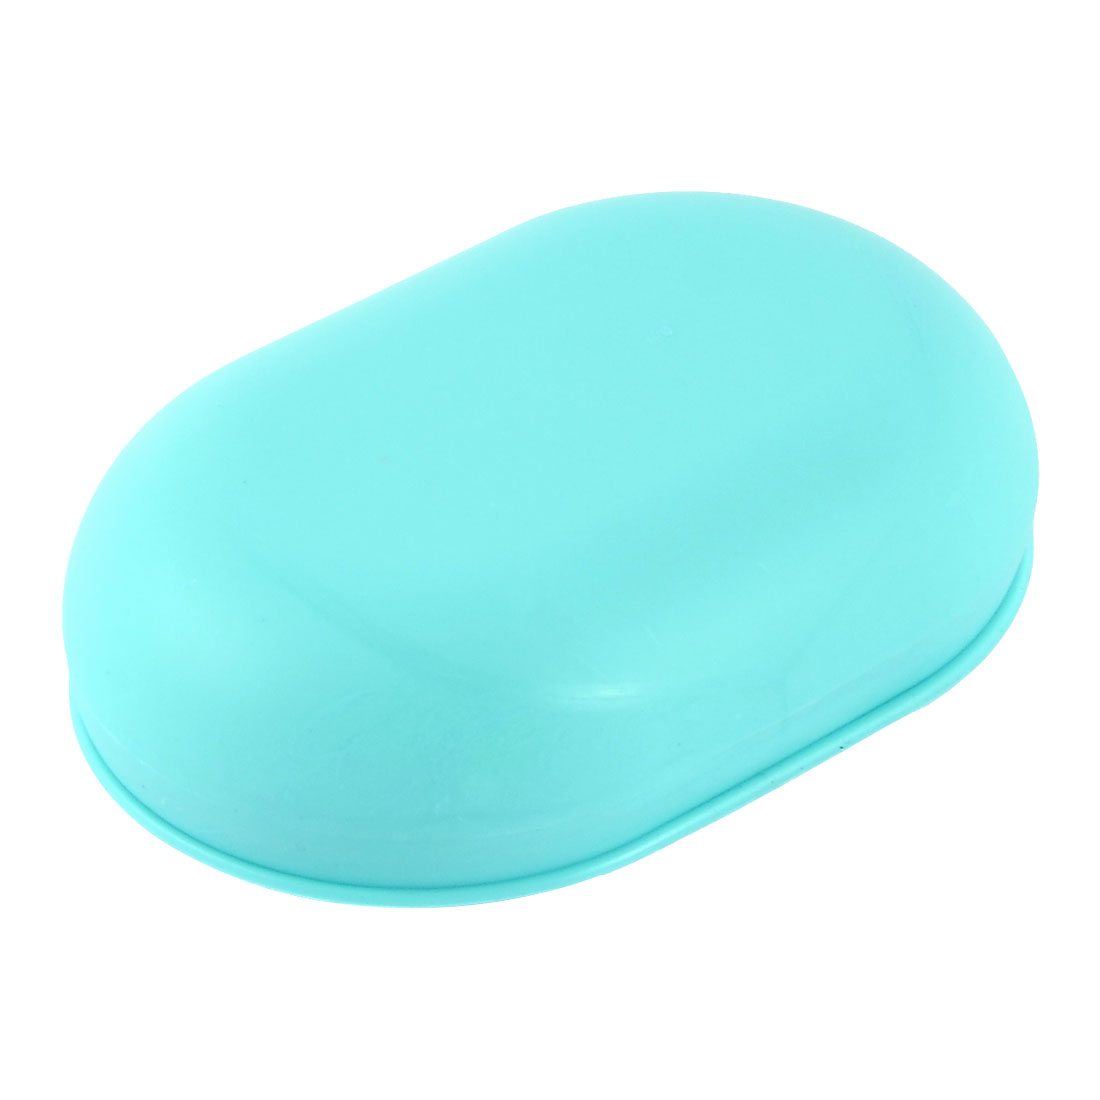 Household Bathroom Plastic Oval Shaped Soap Case Holder Container Box Sky Blue